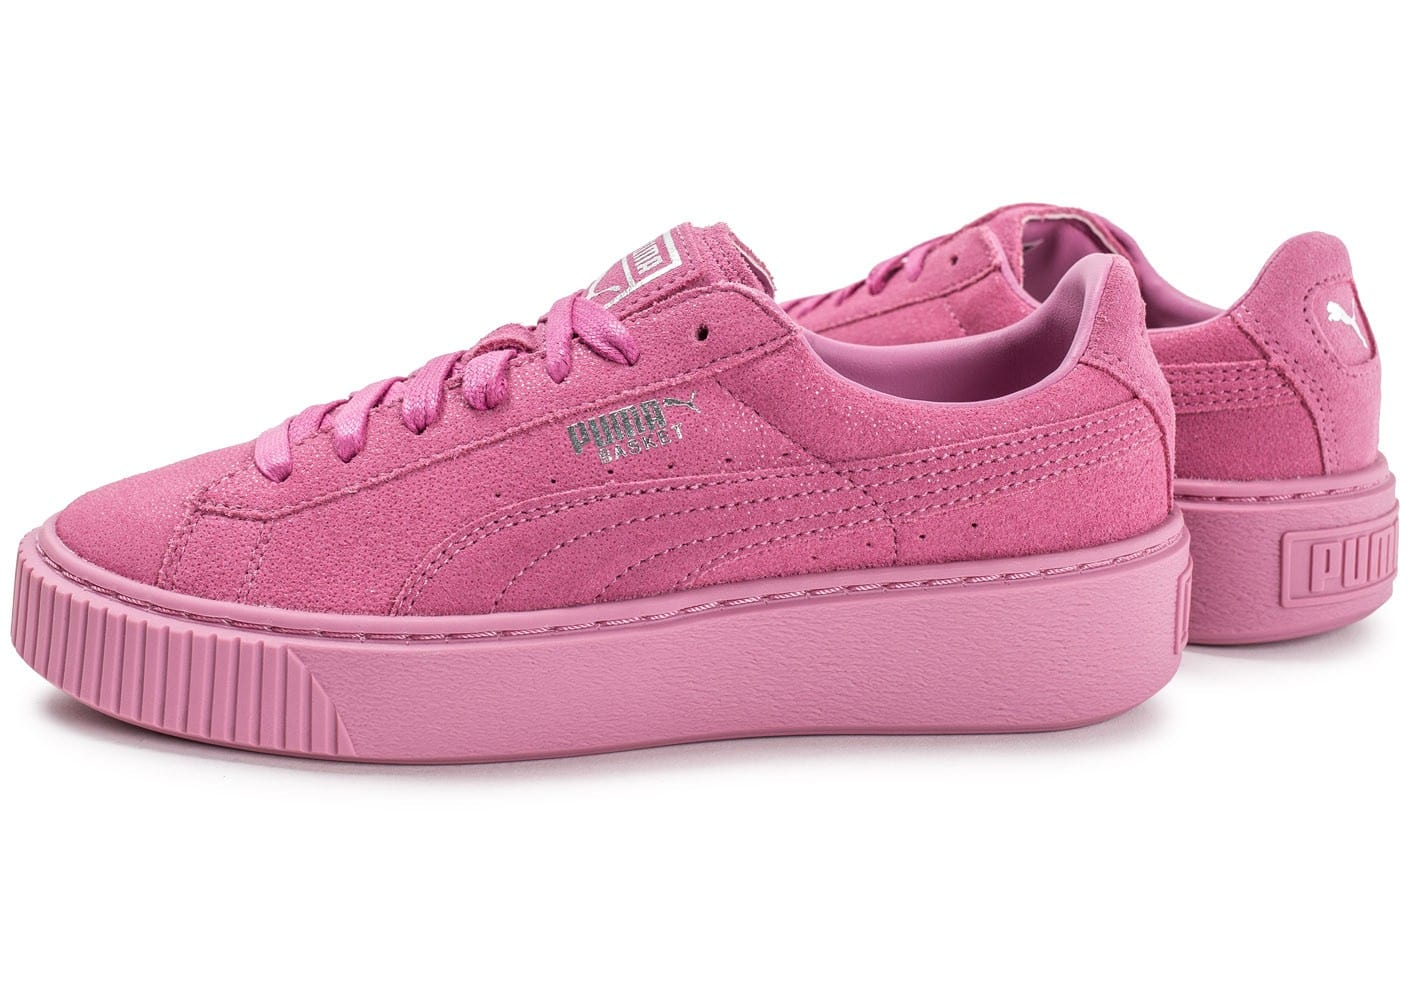 Basket Reset Chausport Rose Femme Puma Platform Baskets Chaussures QBCordxWe